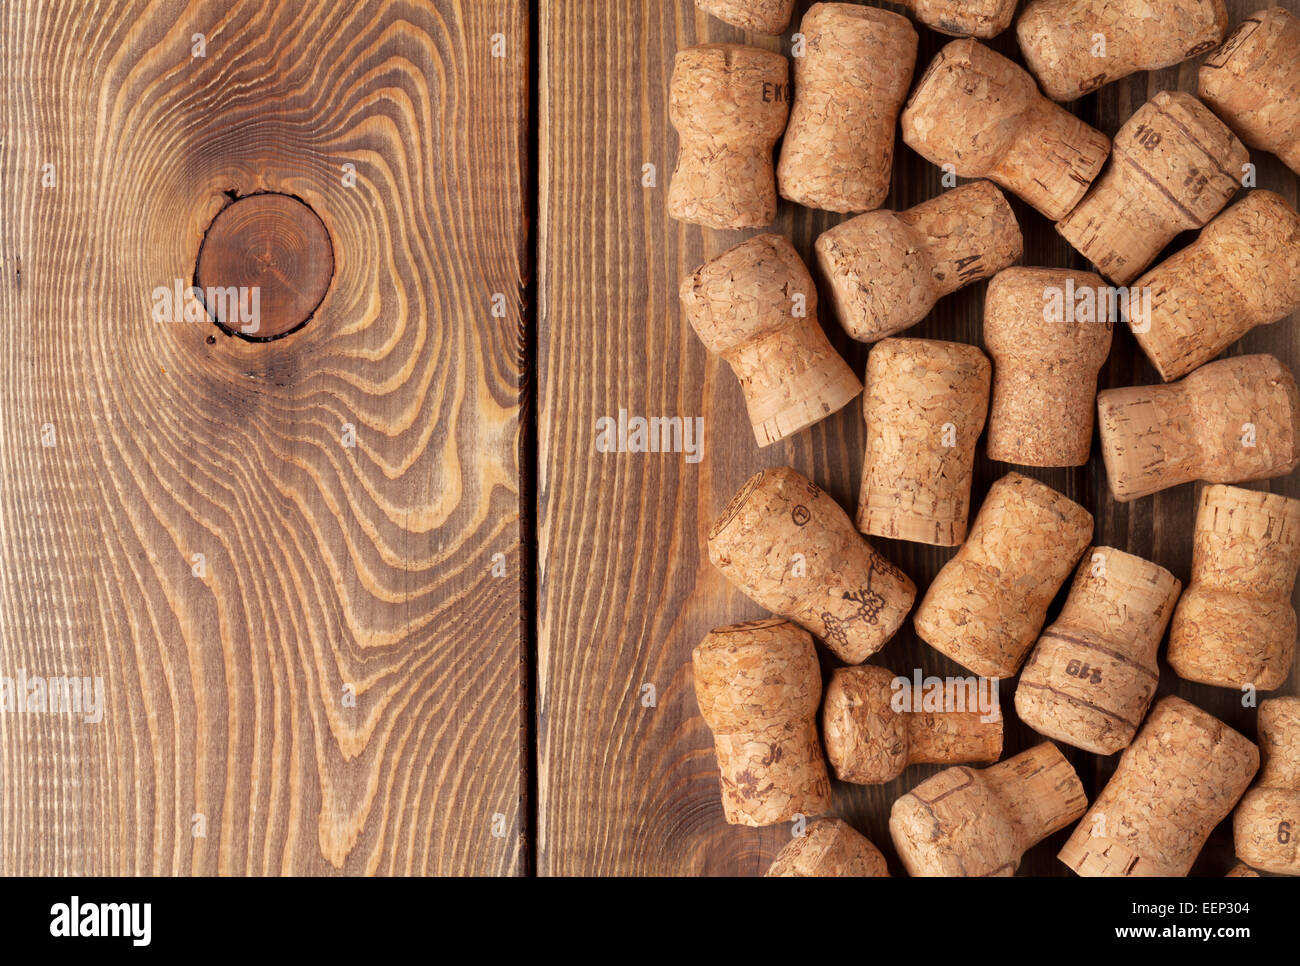 Champagne wine corks over wooden table texture background - Stock Image